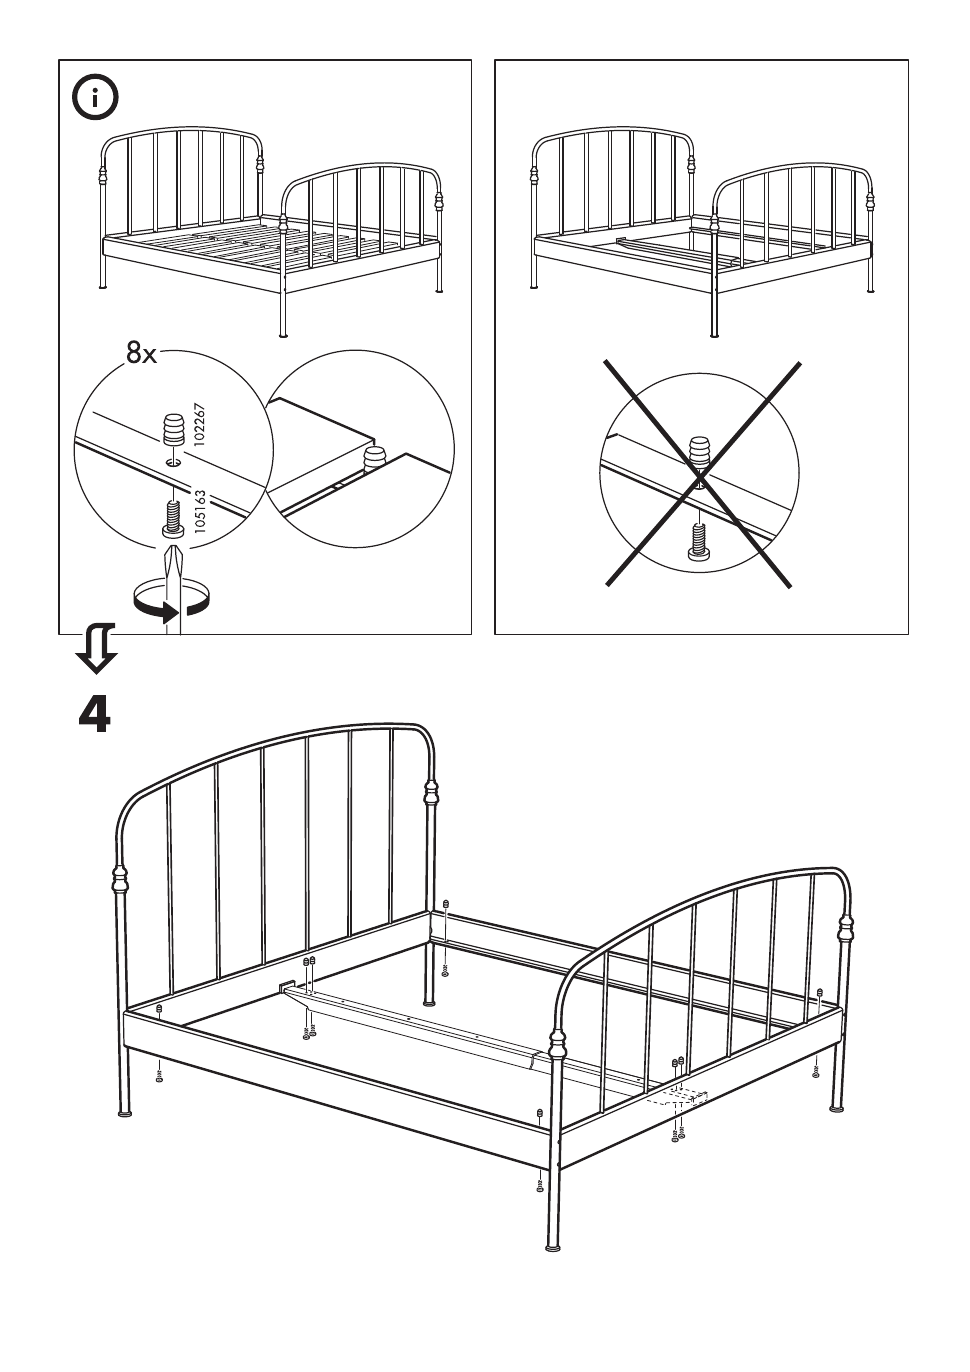 ikea lillesand bed frame full queen king assembly instruction page 7 free pdf download 8. Black Bedroom Furniture Sets. Home Design Ideas